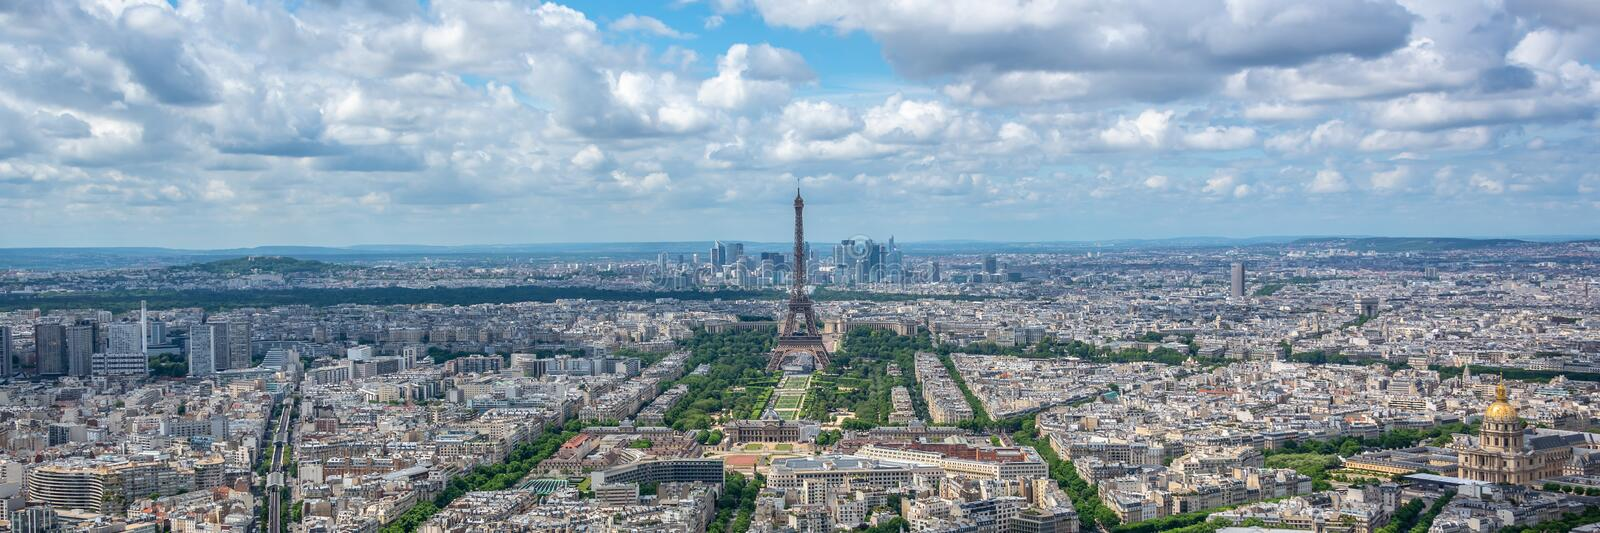 Aerial panoramic scenic view of Paris with the Eiffel tower, France and Europe city panorama royalty free stock image